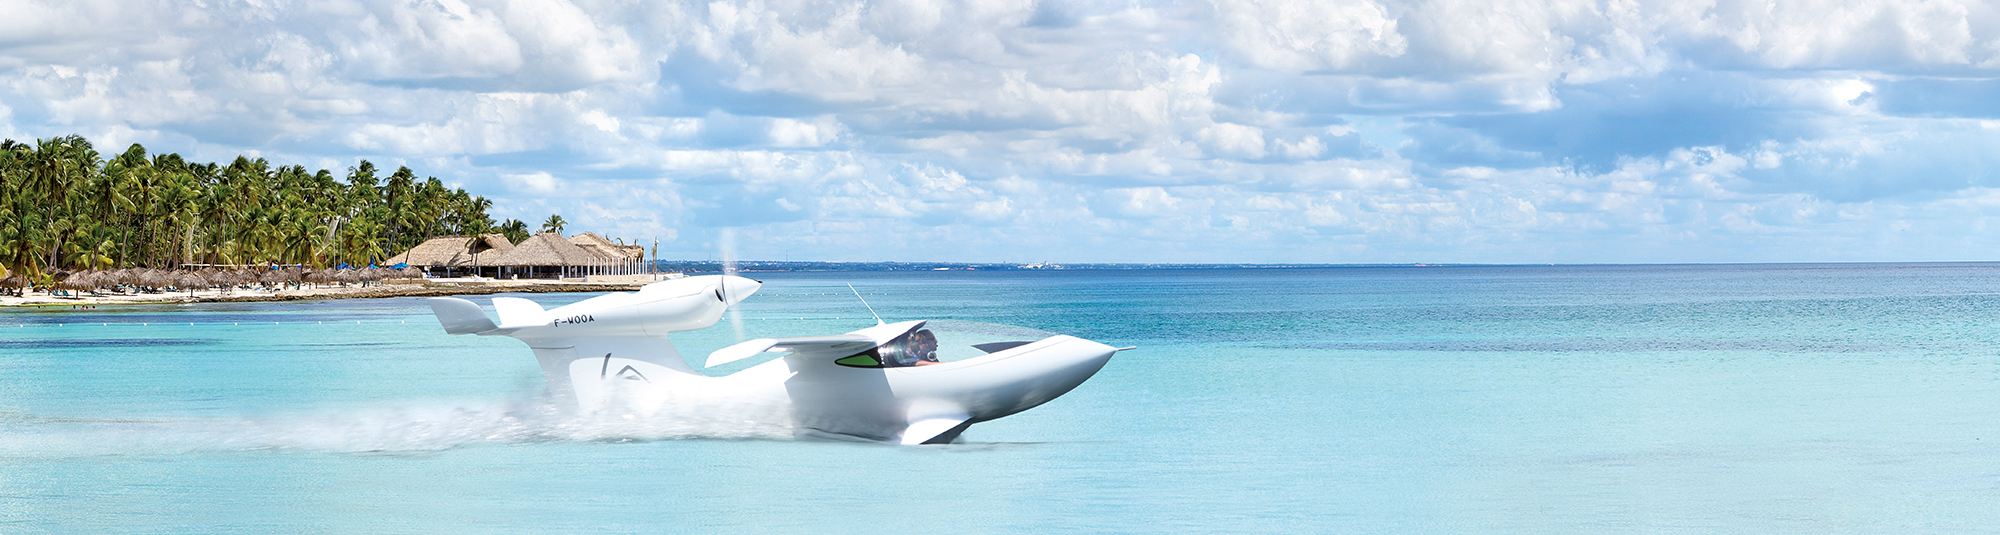 Seaplane gains speed on water thanks to hydrofoils